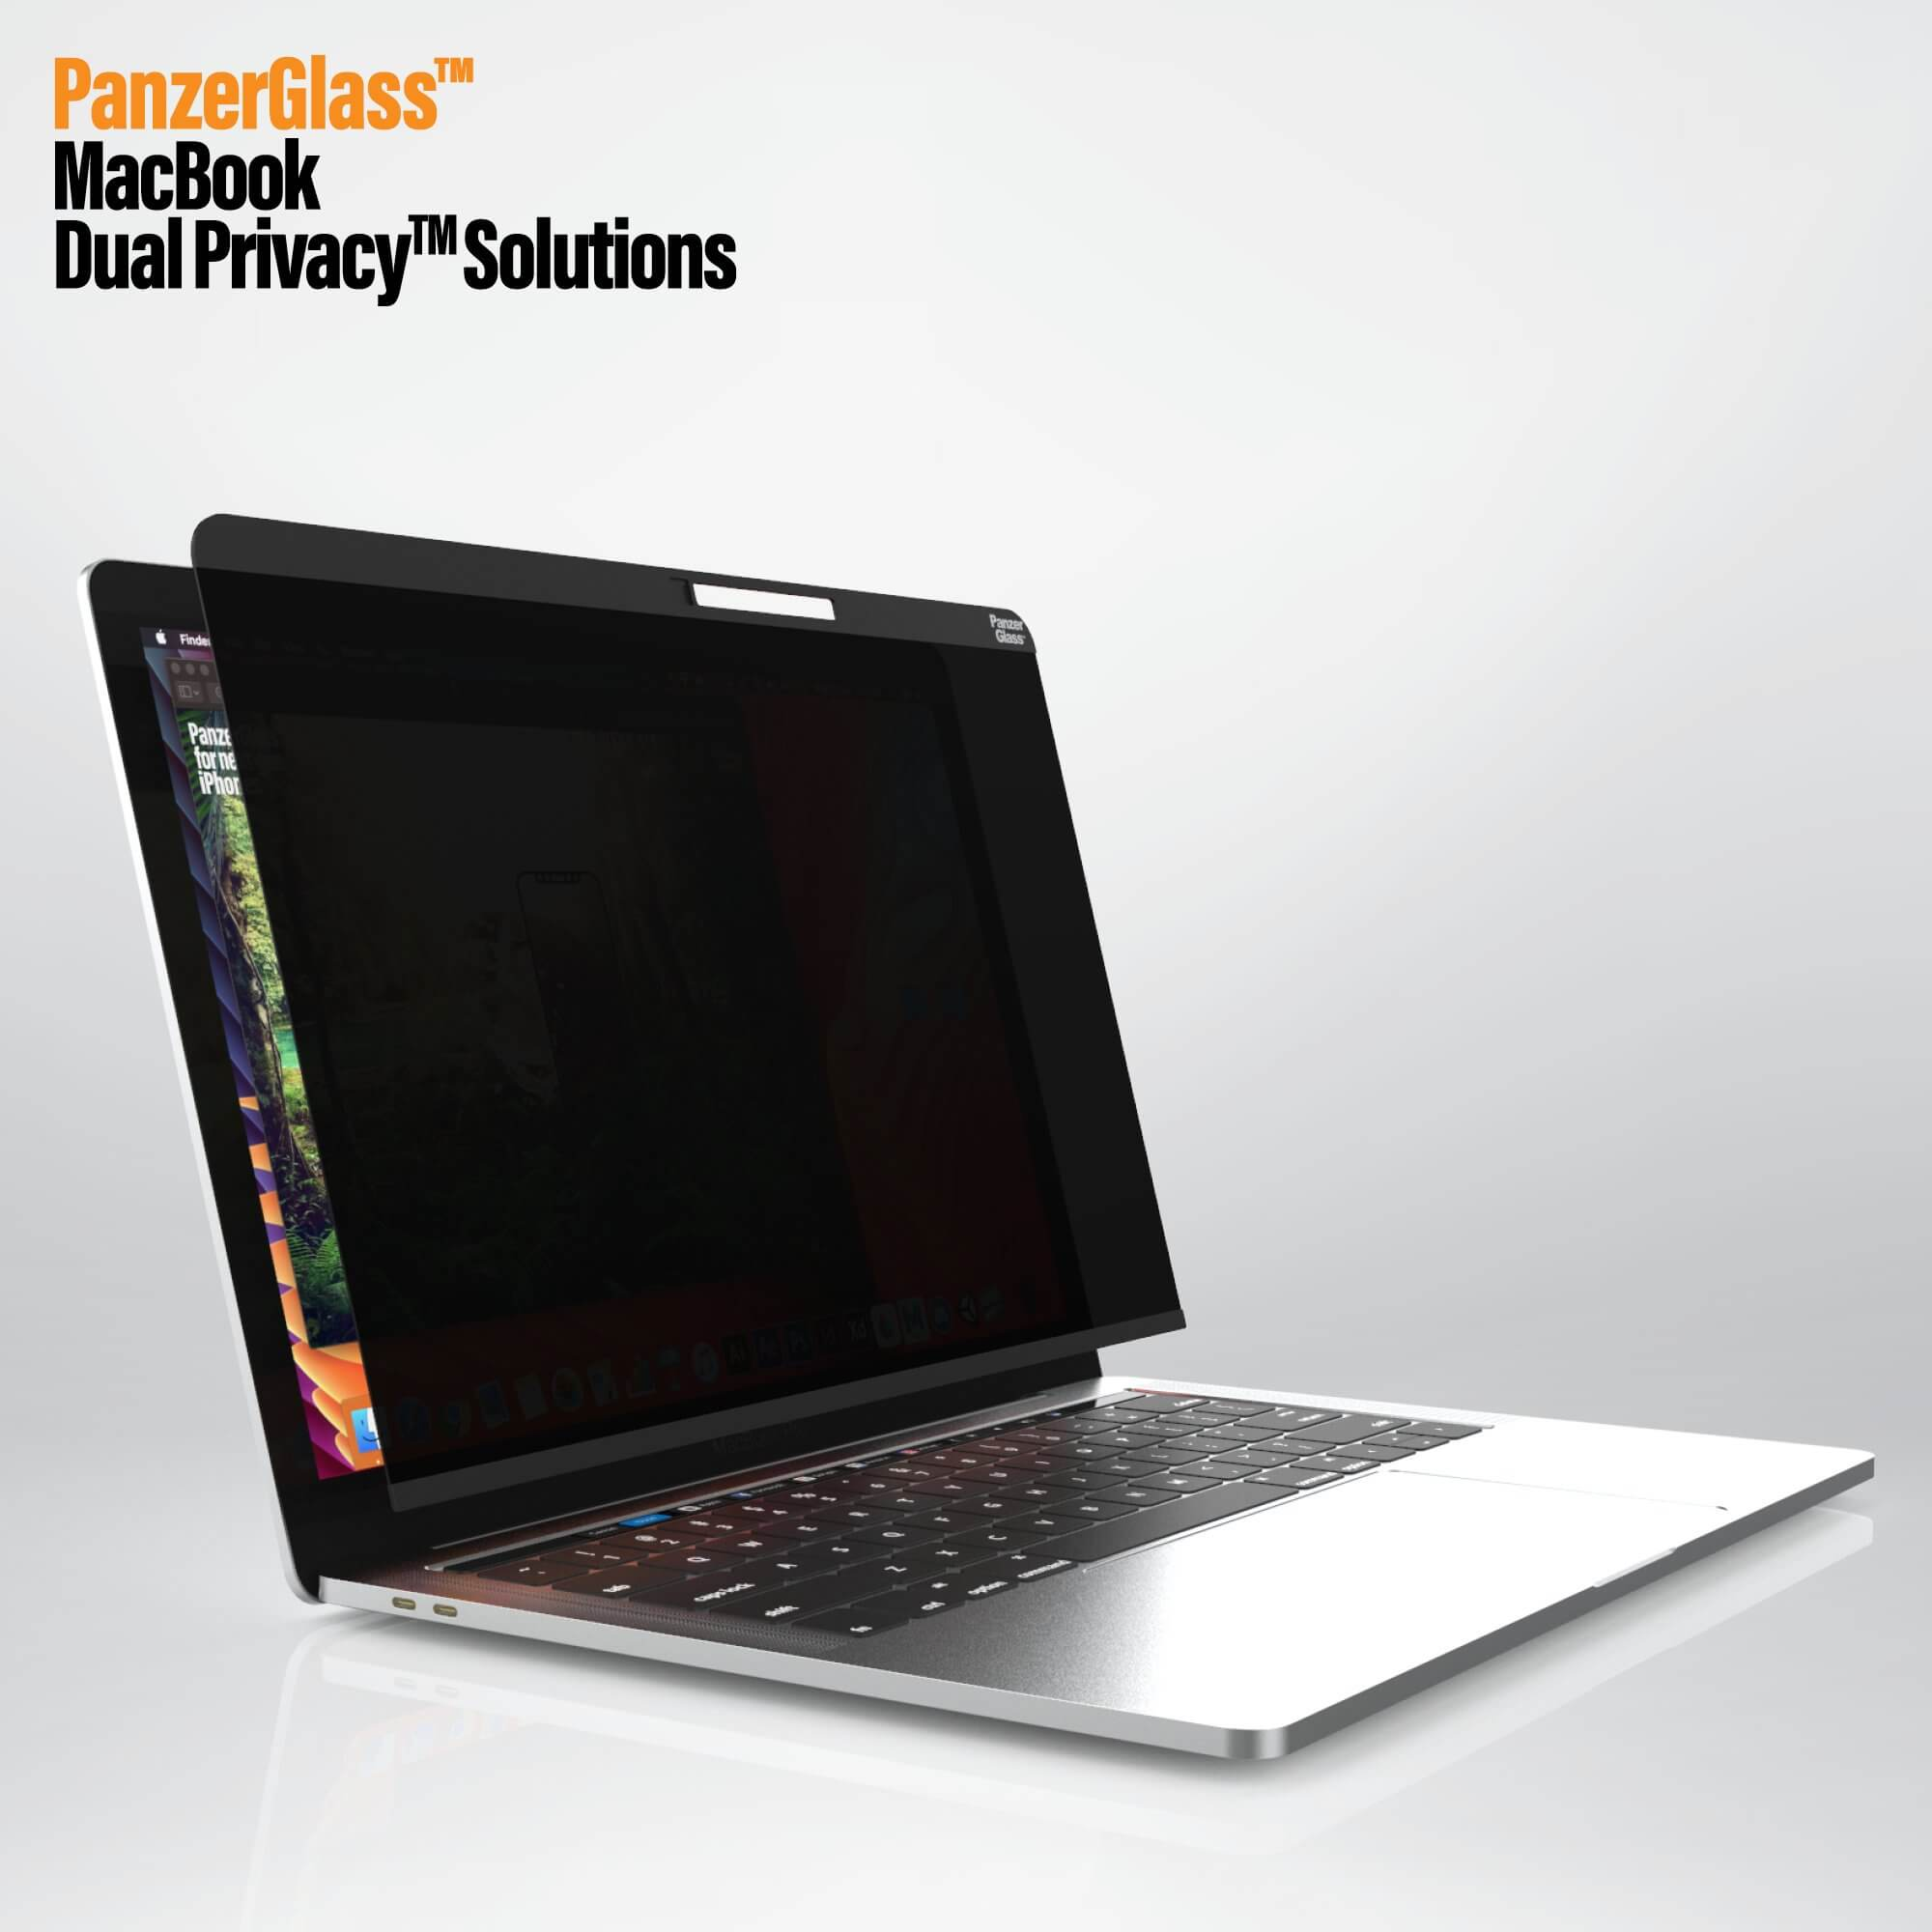 PanzerGlass Magnetic Privacy 15.4'' MacBook Pro